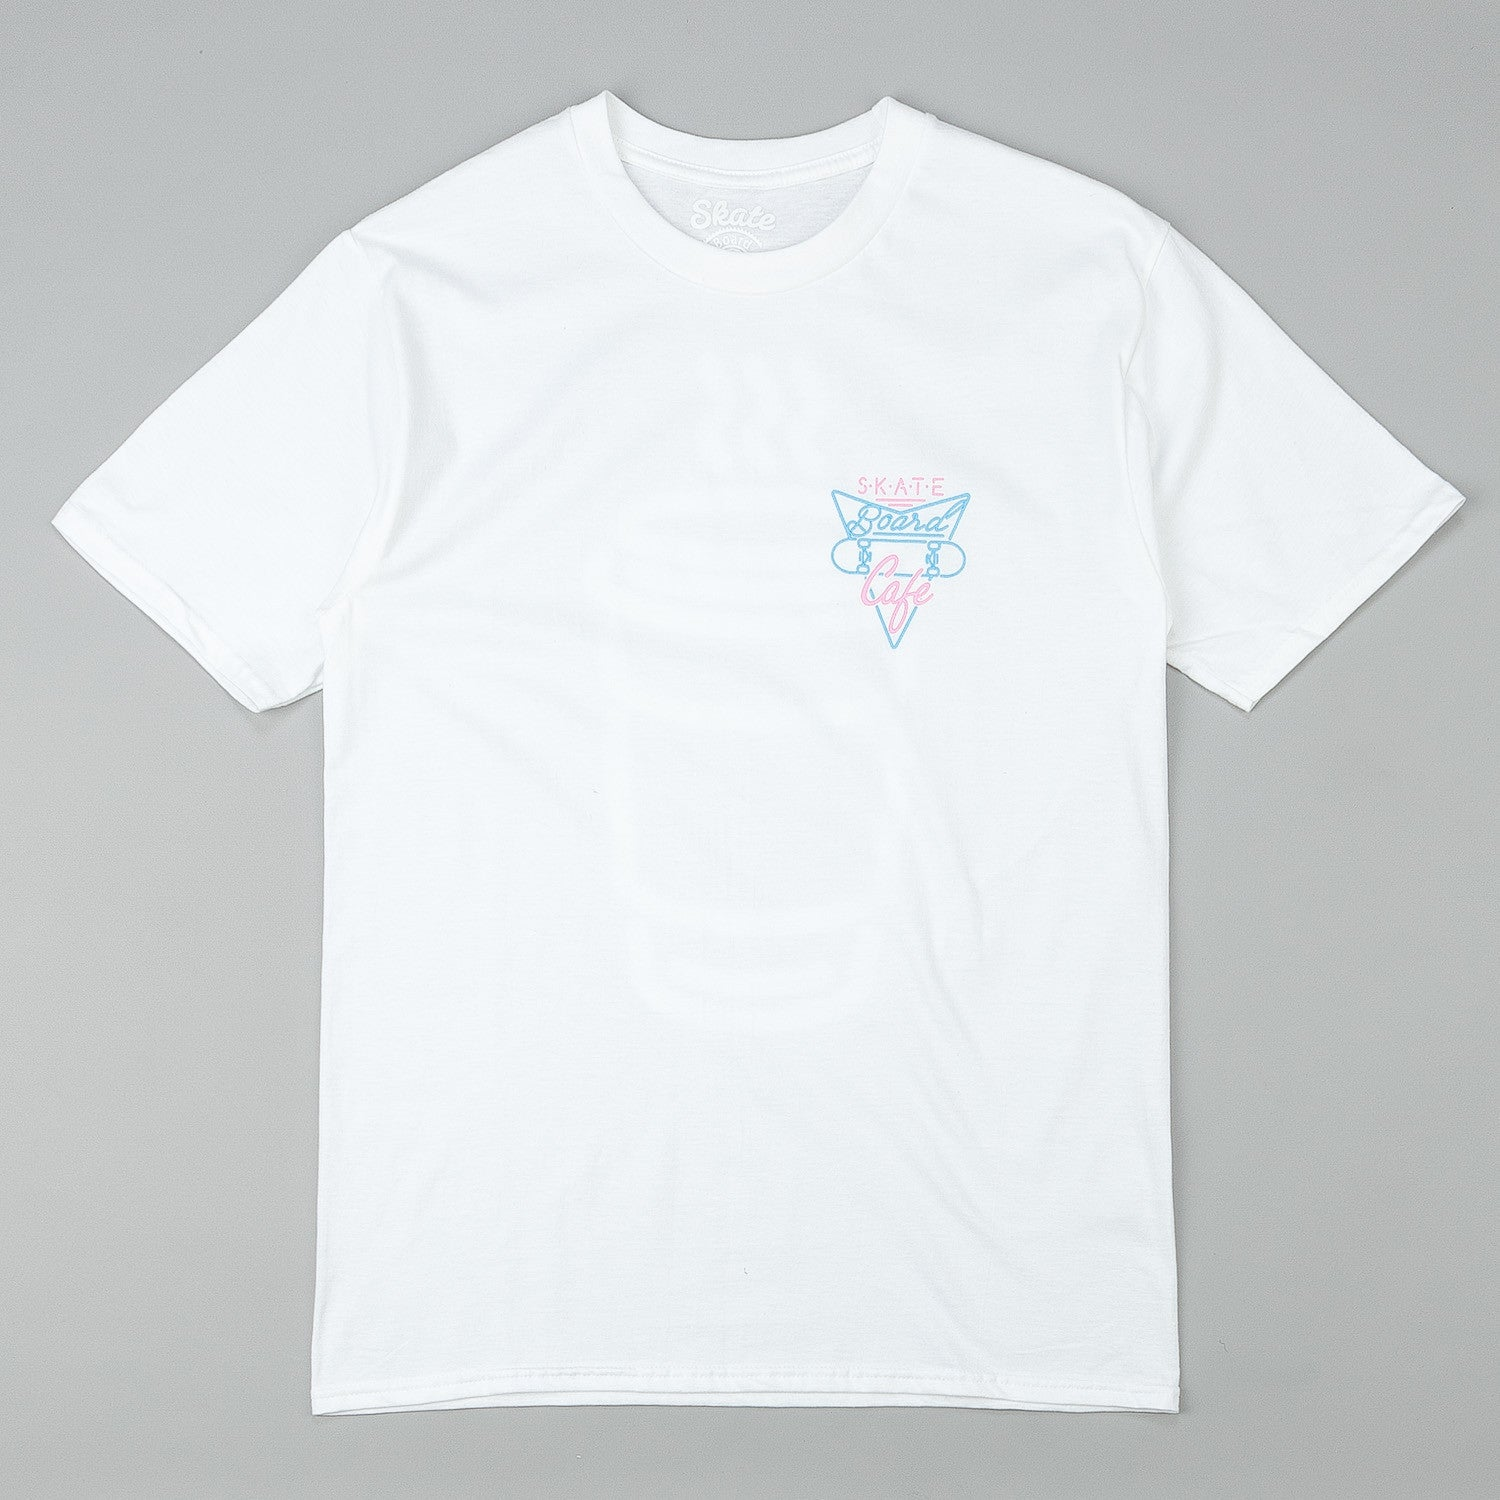 Skateboard Cafe Neon Cup T-Shirt